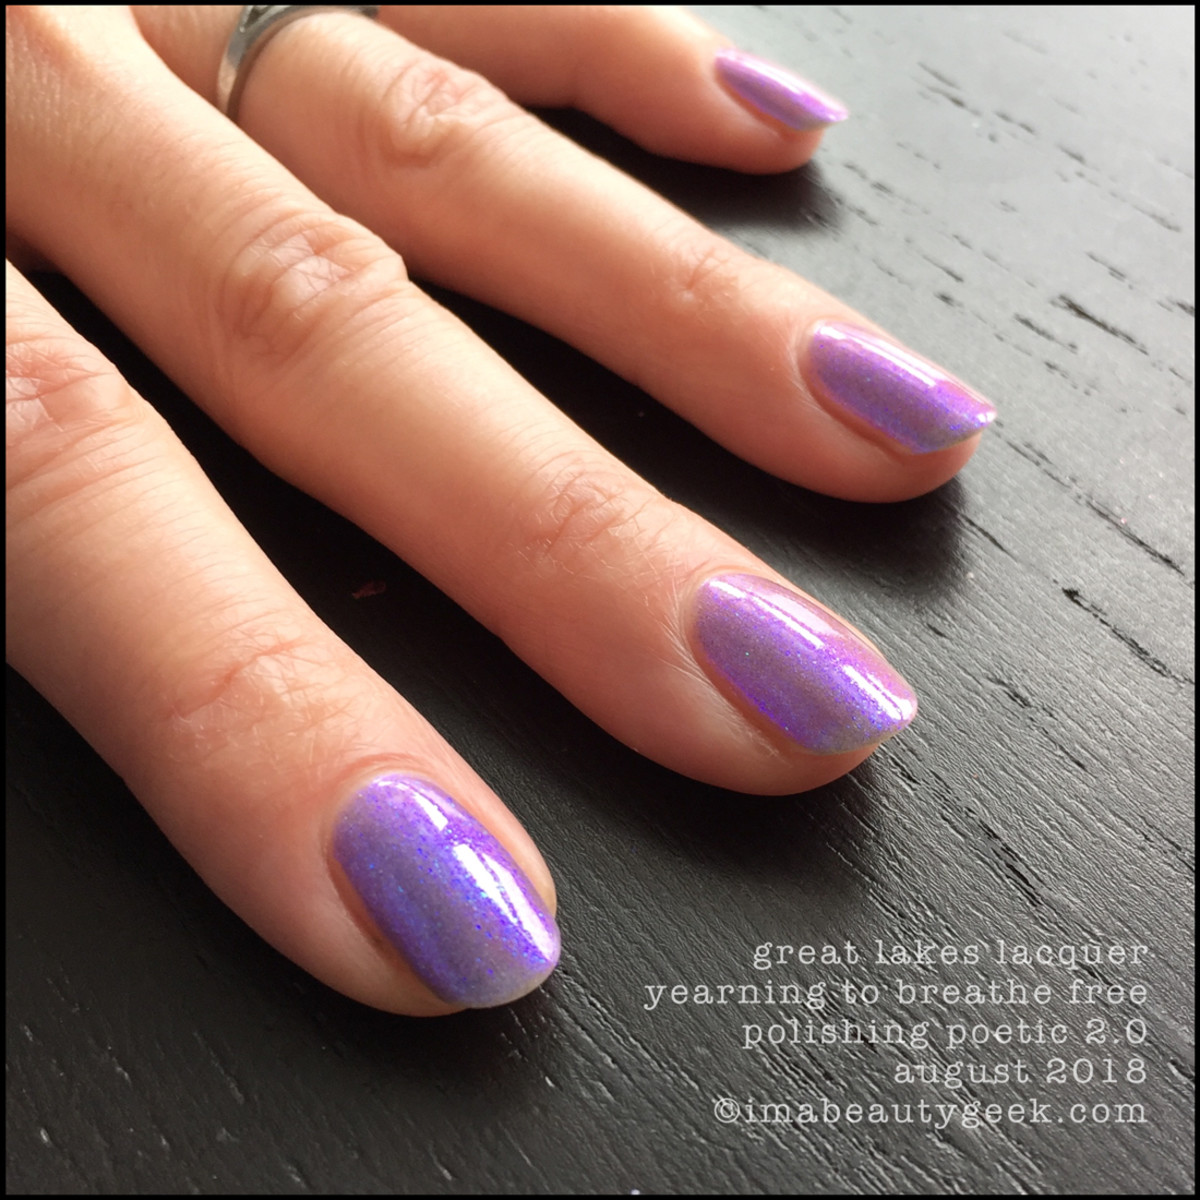 Great Lakes Lacquer Yearning to Breathe Free 4 _ Great Lakes Lacquer Polishing Poetic 2.0 Swatches Review